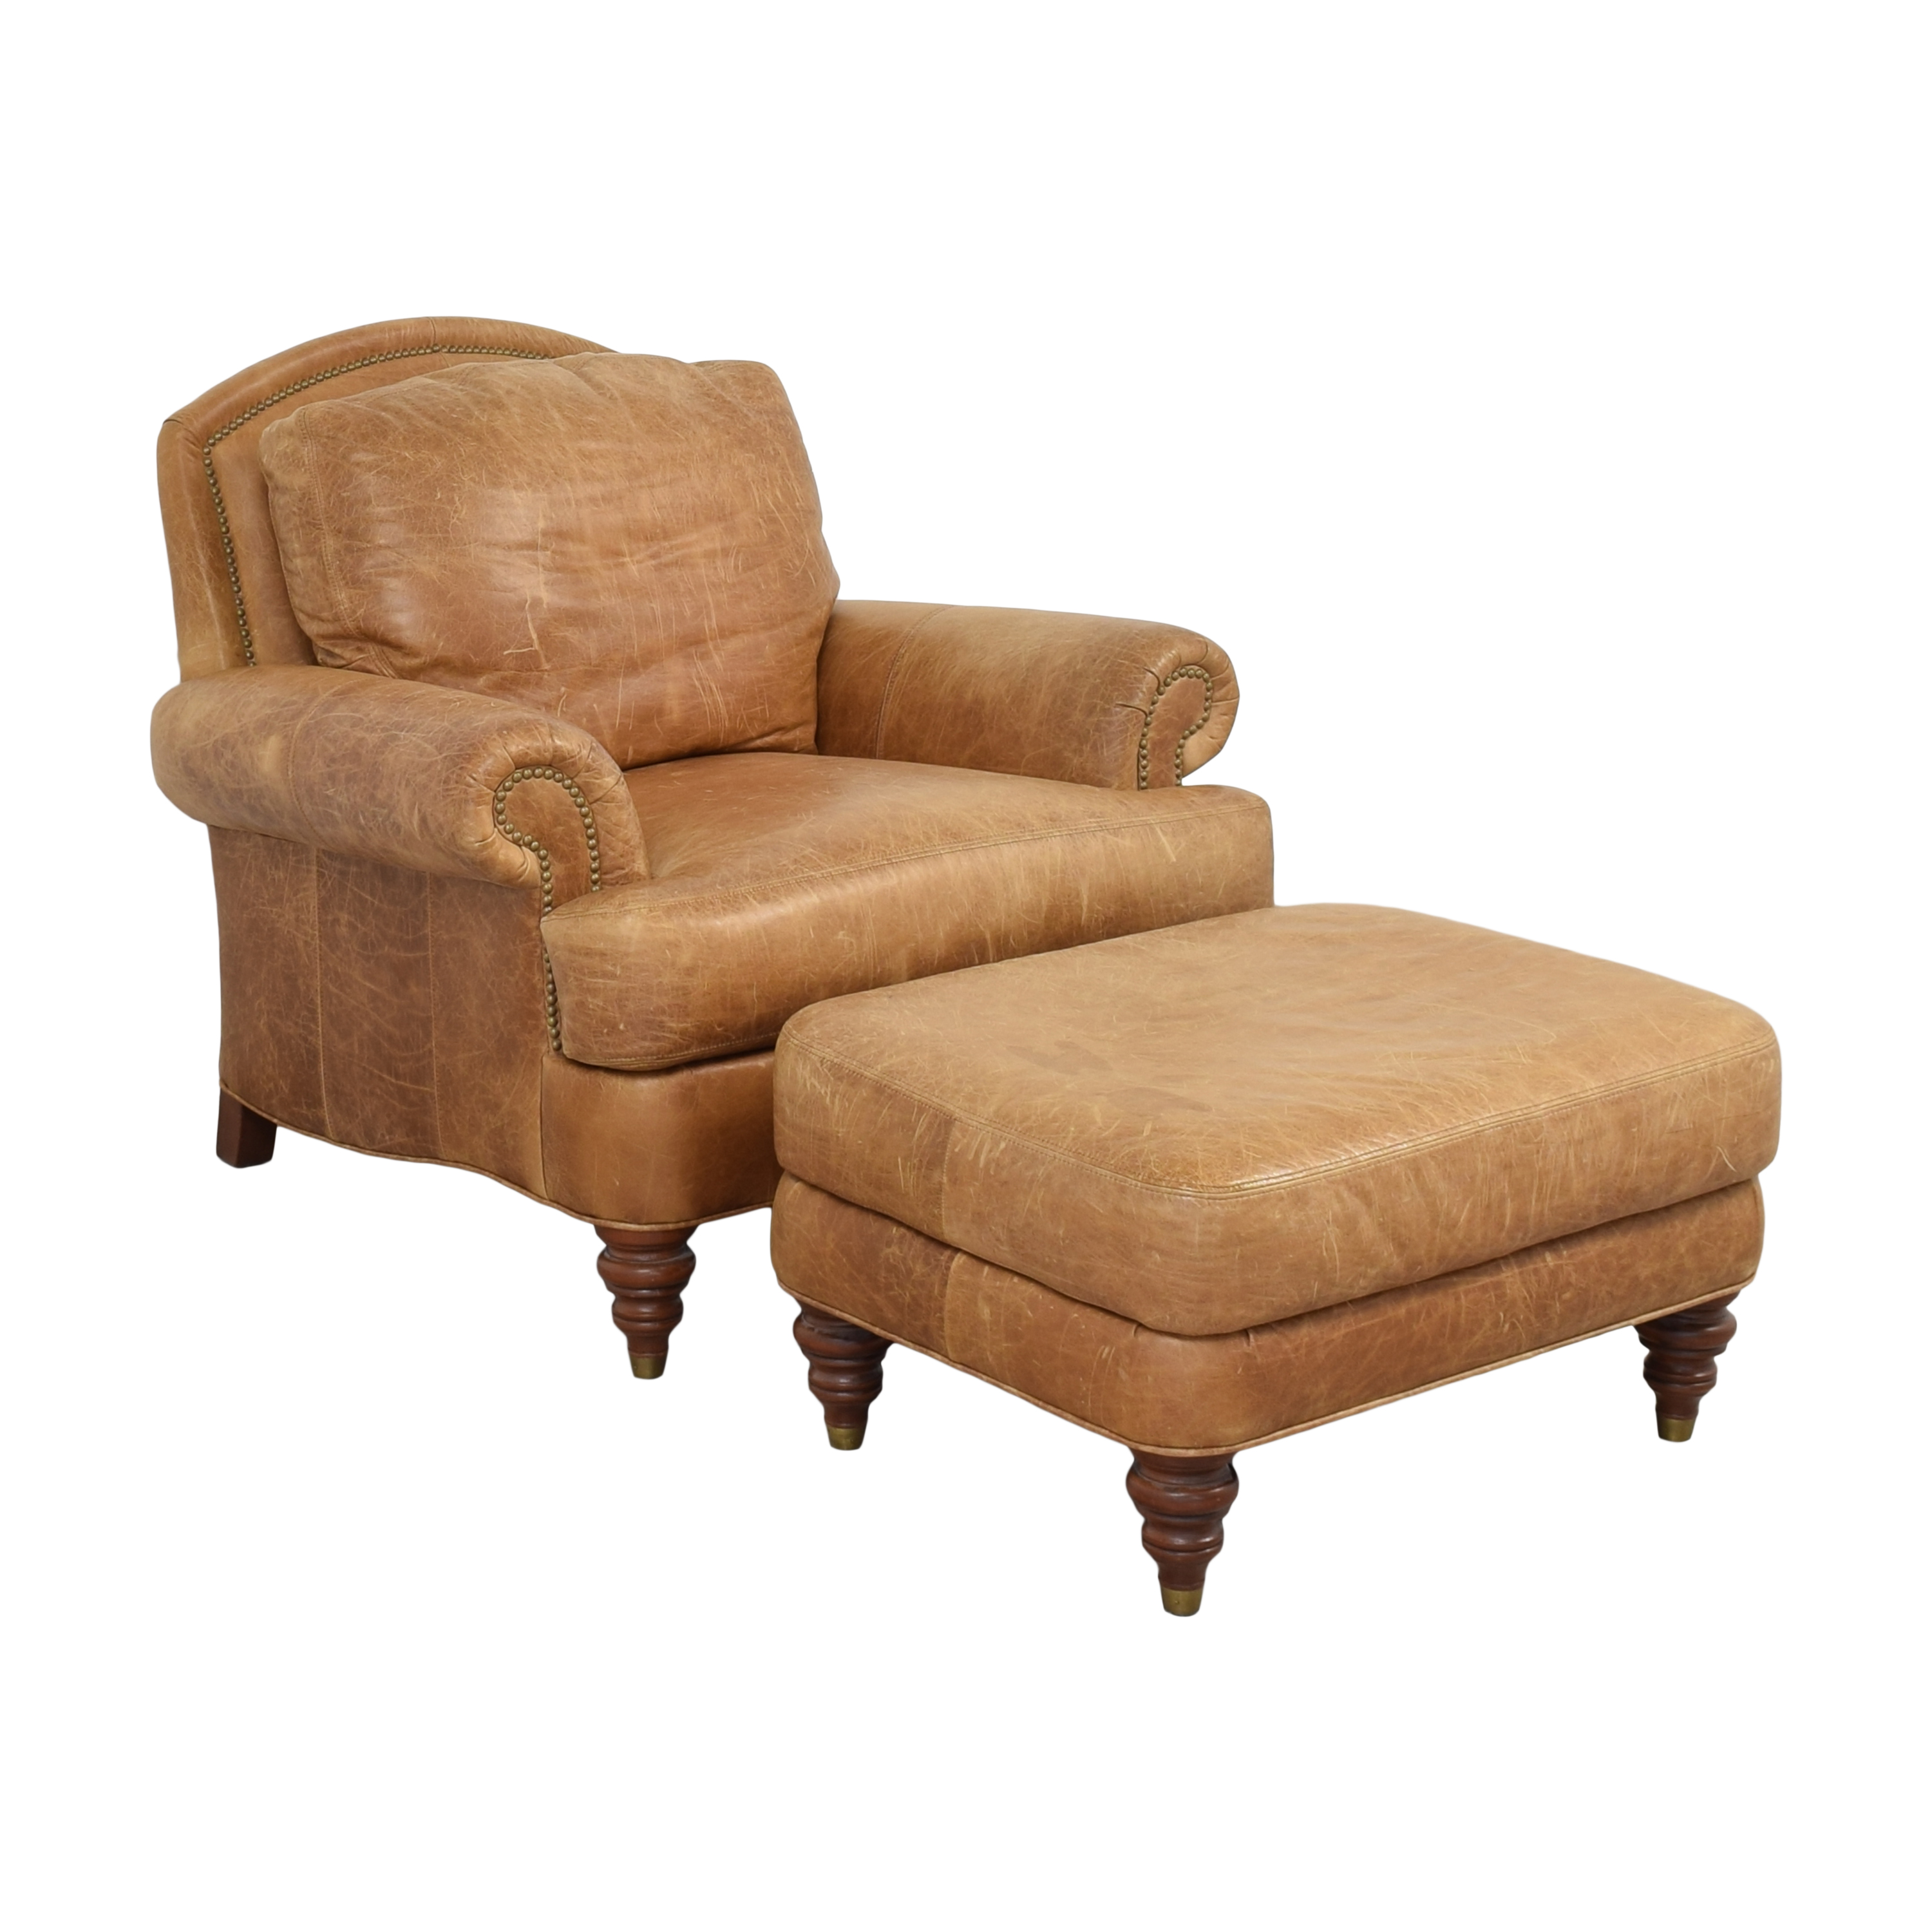 Ethan Allen Lounge Chair and Ottoman / Chairs